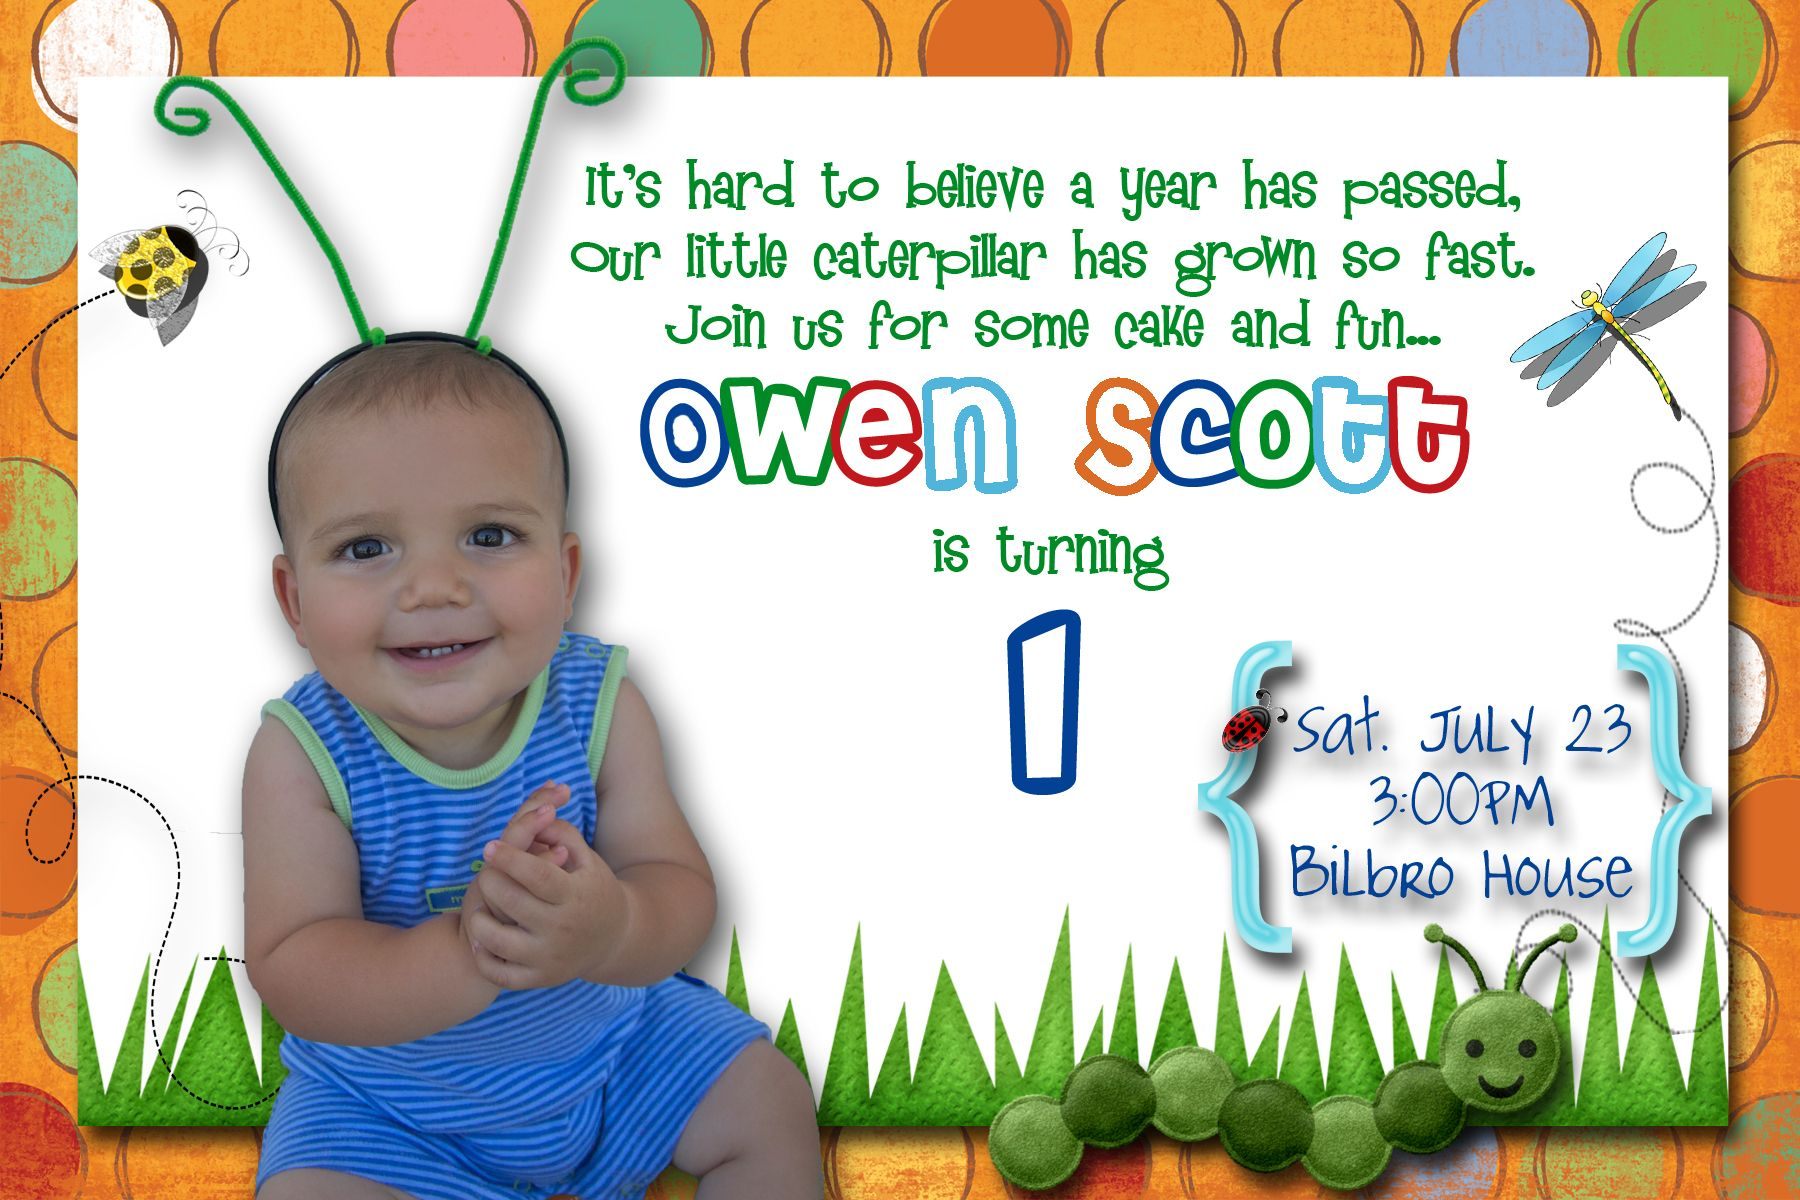 Bug birthday theme caterpillar bug themed birthday party brady first birthday party invitation ideas bookmarktalkfo Image collections